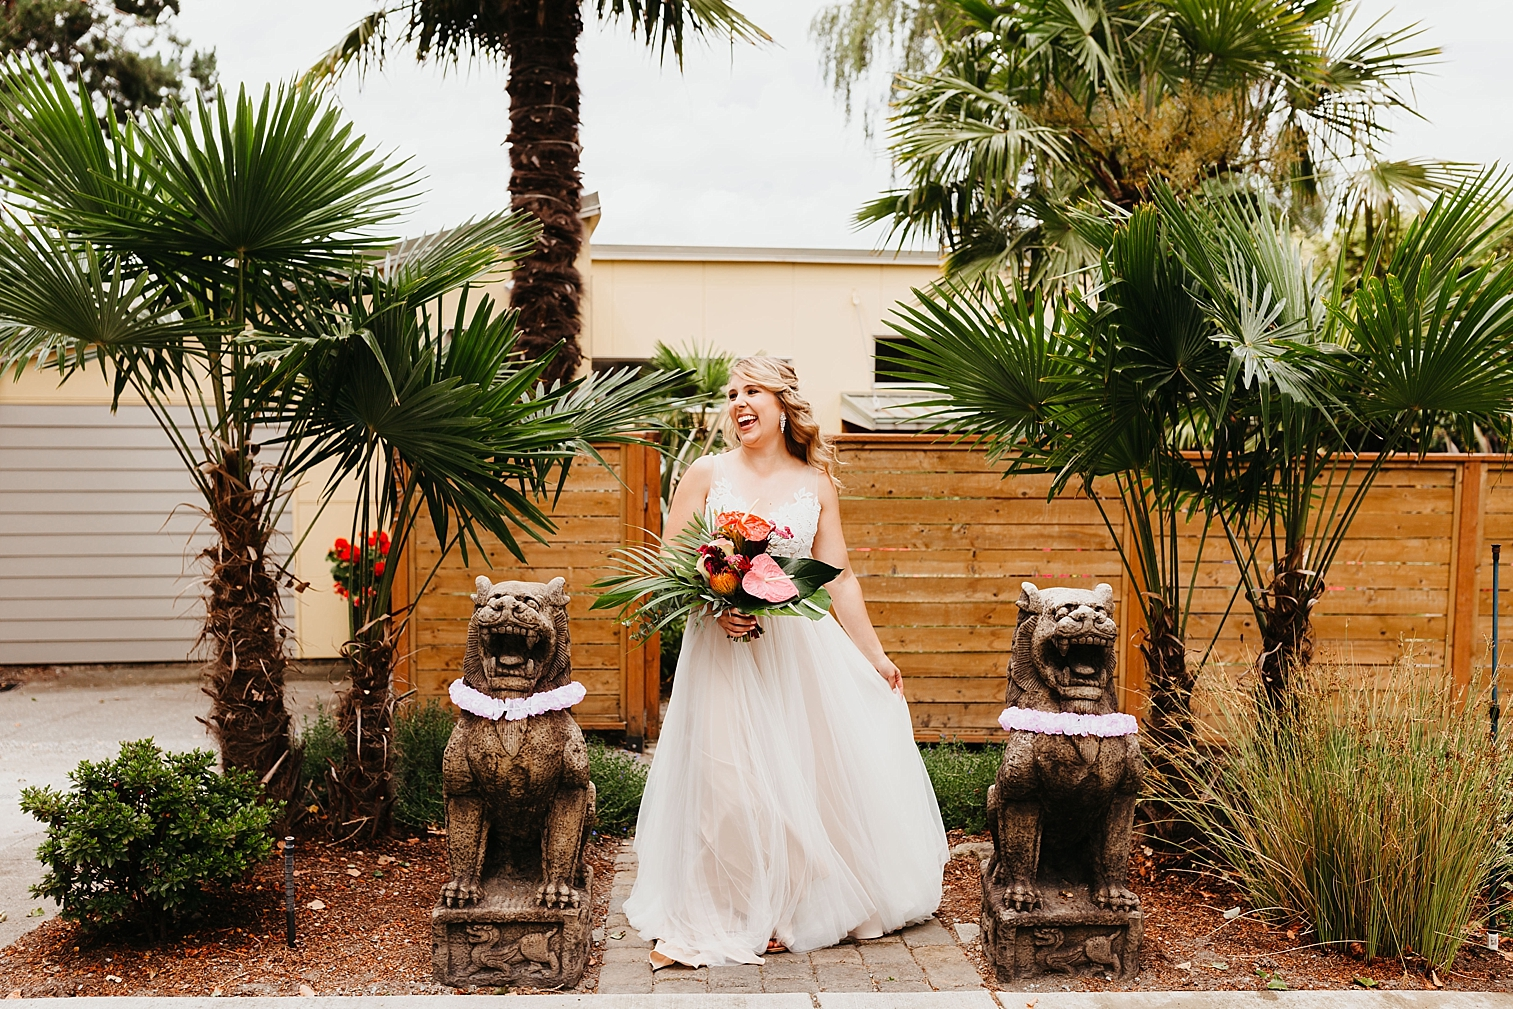 Tropical-Vintage-Within-Sodo-Wedding-19.jpg